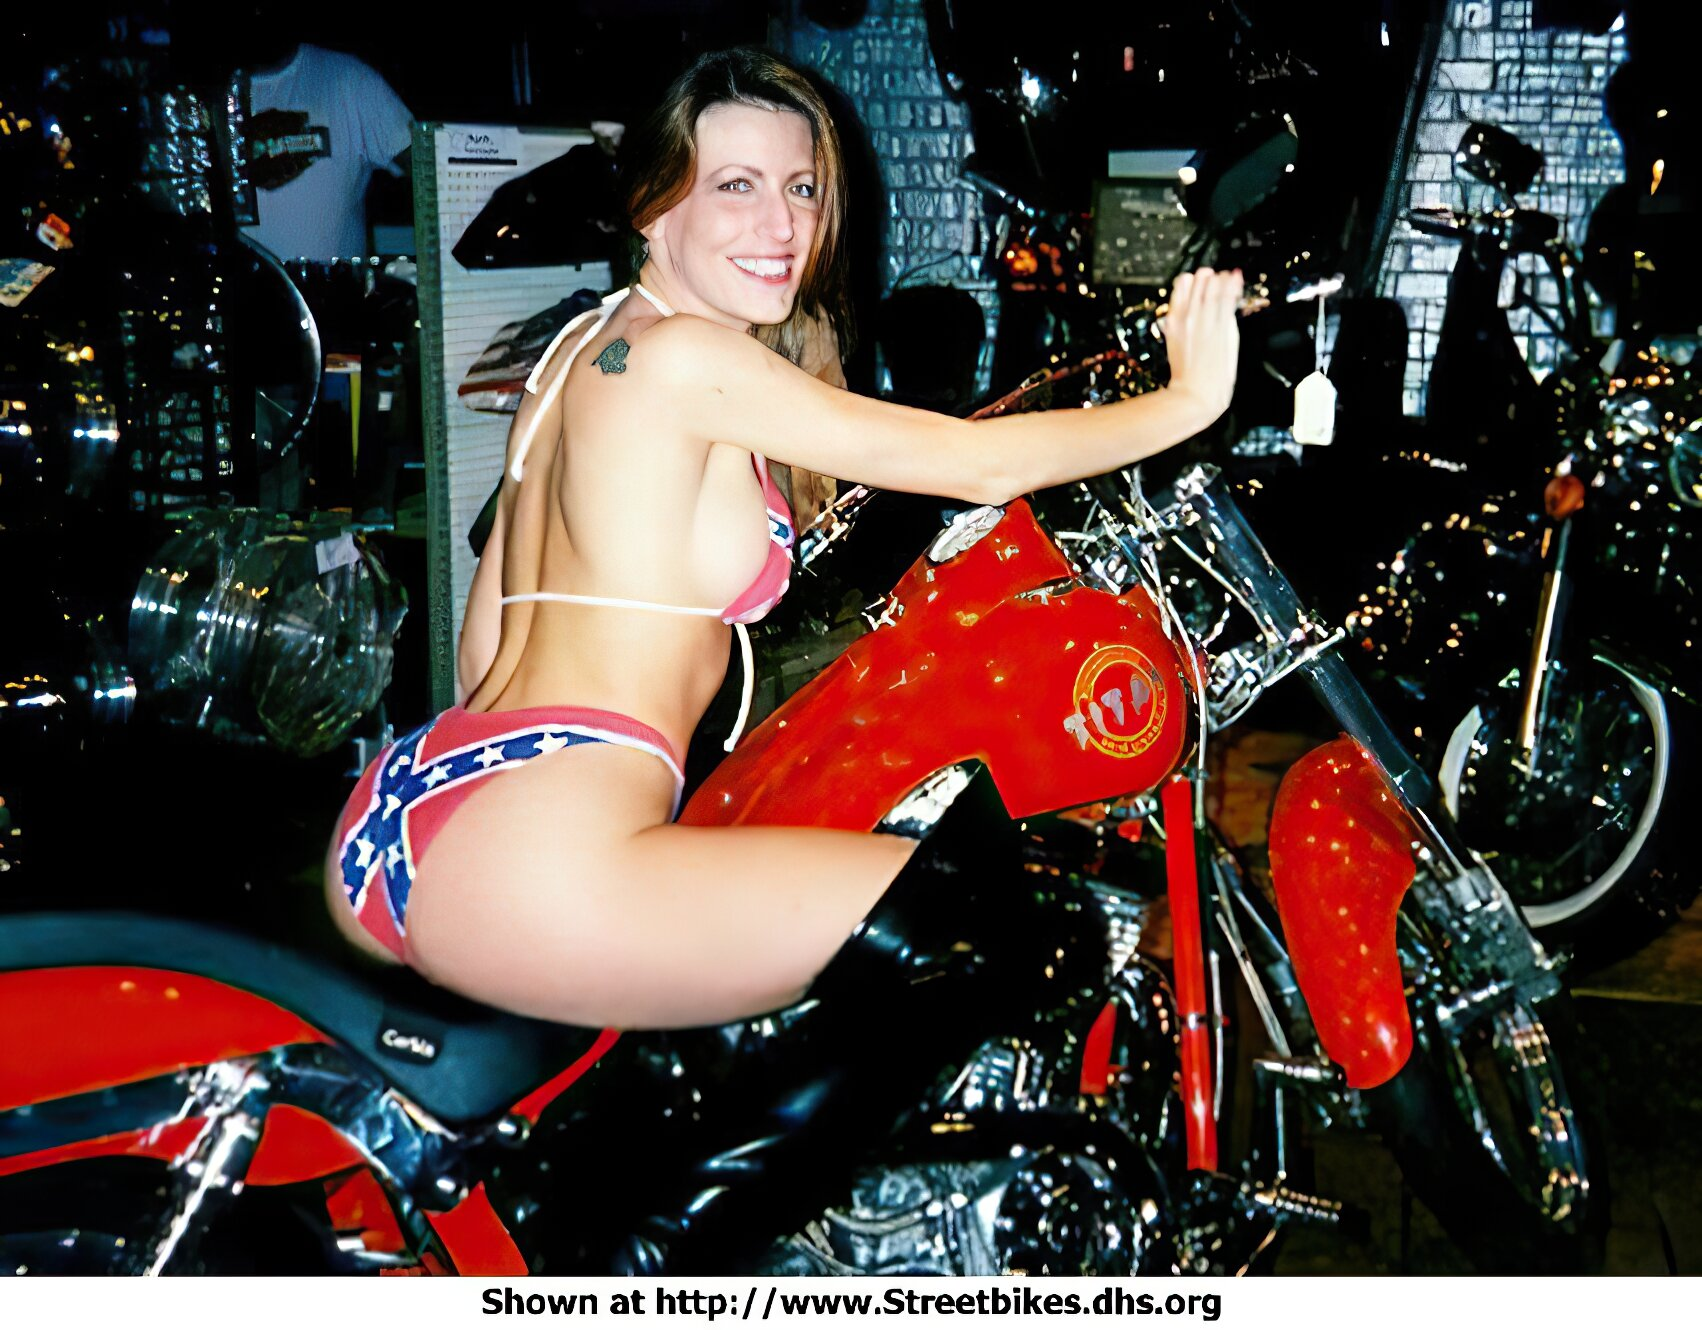 Harley-Davidson Unknown (HD) - ID: 1401